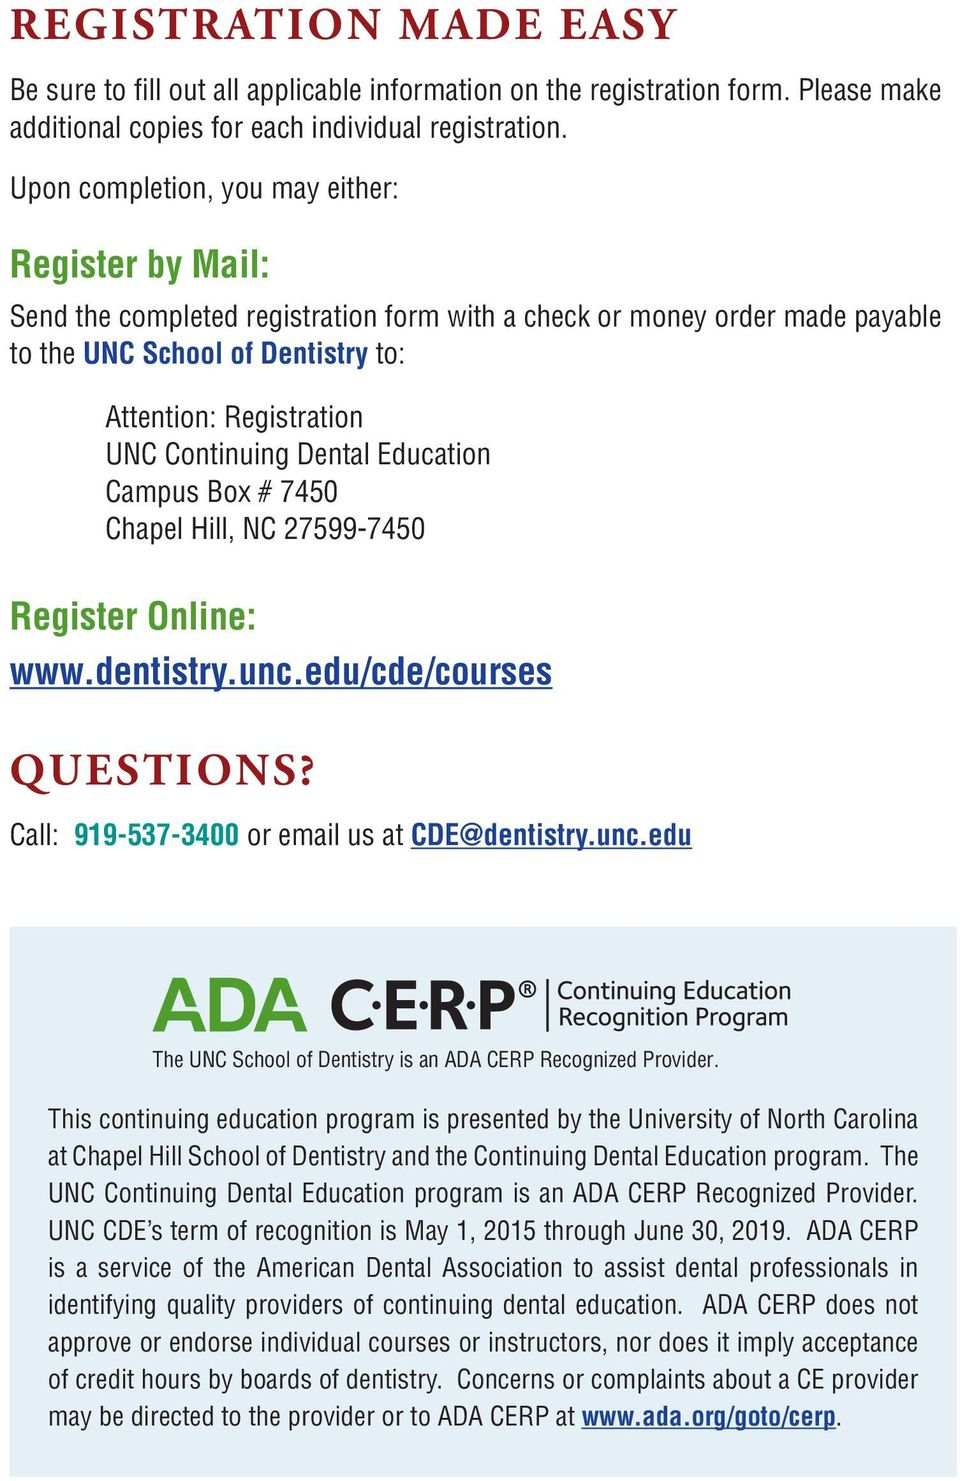 Continuing Dental Education Campus Box # 7450 Chapel Hill, NC 27599-7450 Register Online: www.dentistry.unc.edu/cde/courses QUESTIONS? Call: 919-537-3400 or email us at CDE@dentistry.unc.edu The UNC School of Dentistry is an ADA CERP Recognized Provider.